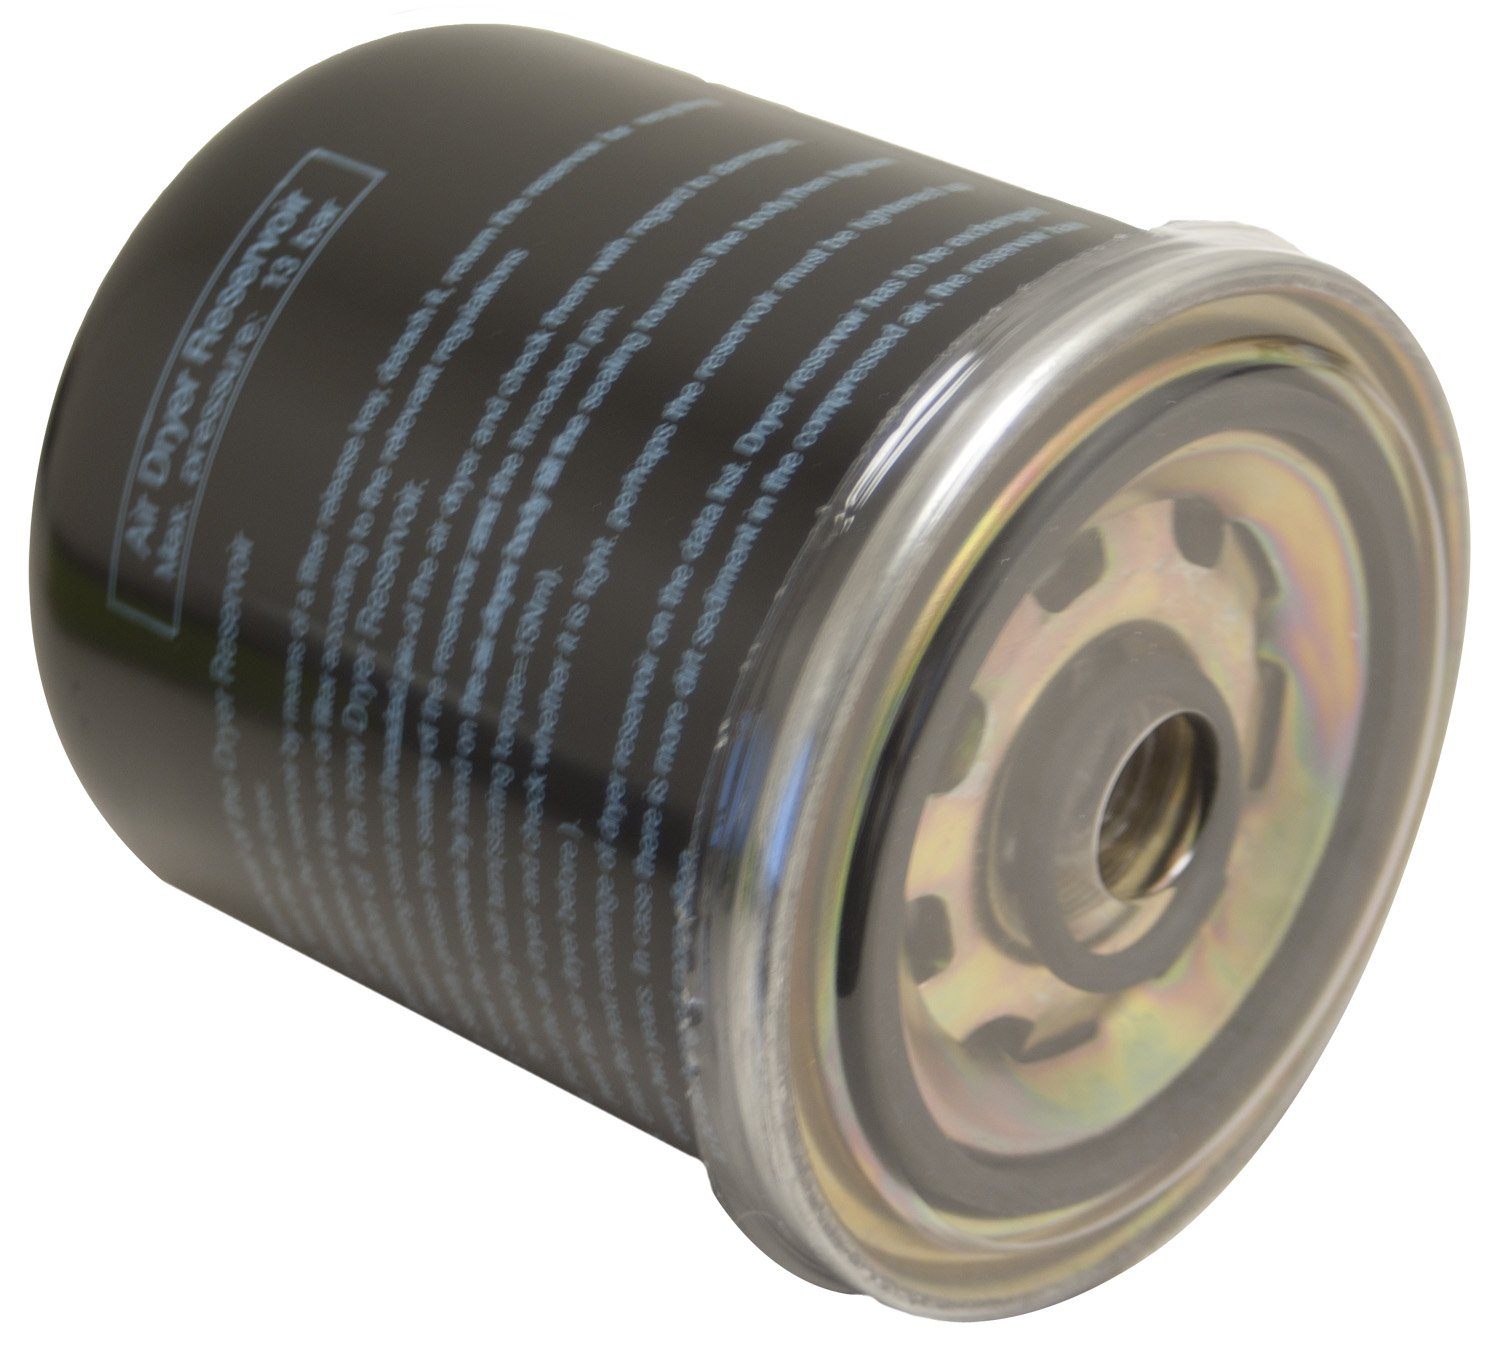 R950011 Air Dryer Reservoir Cartridge Replaces Meritor Bendix Fuel Filters New Automotive